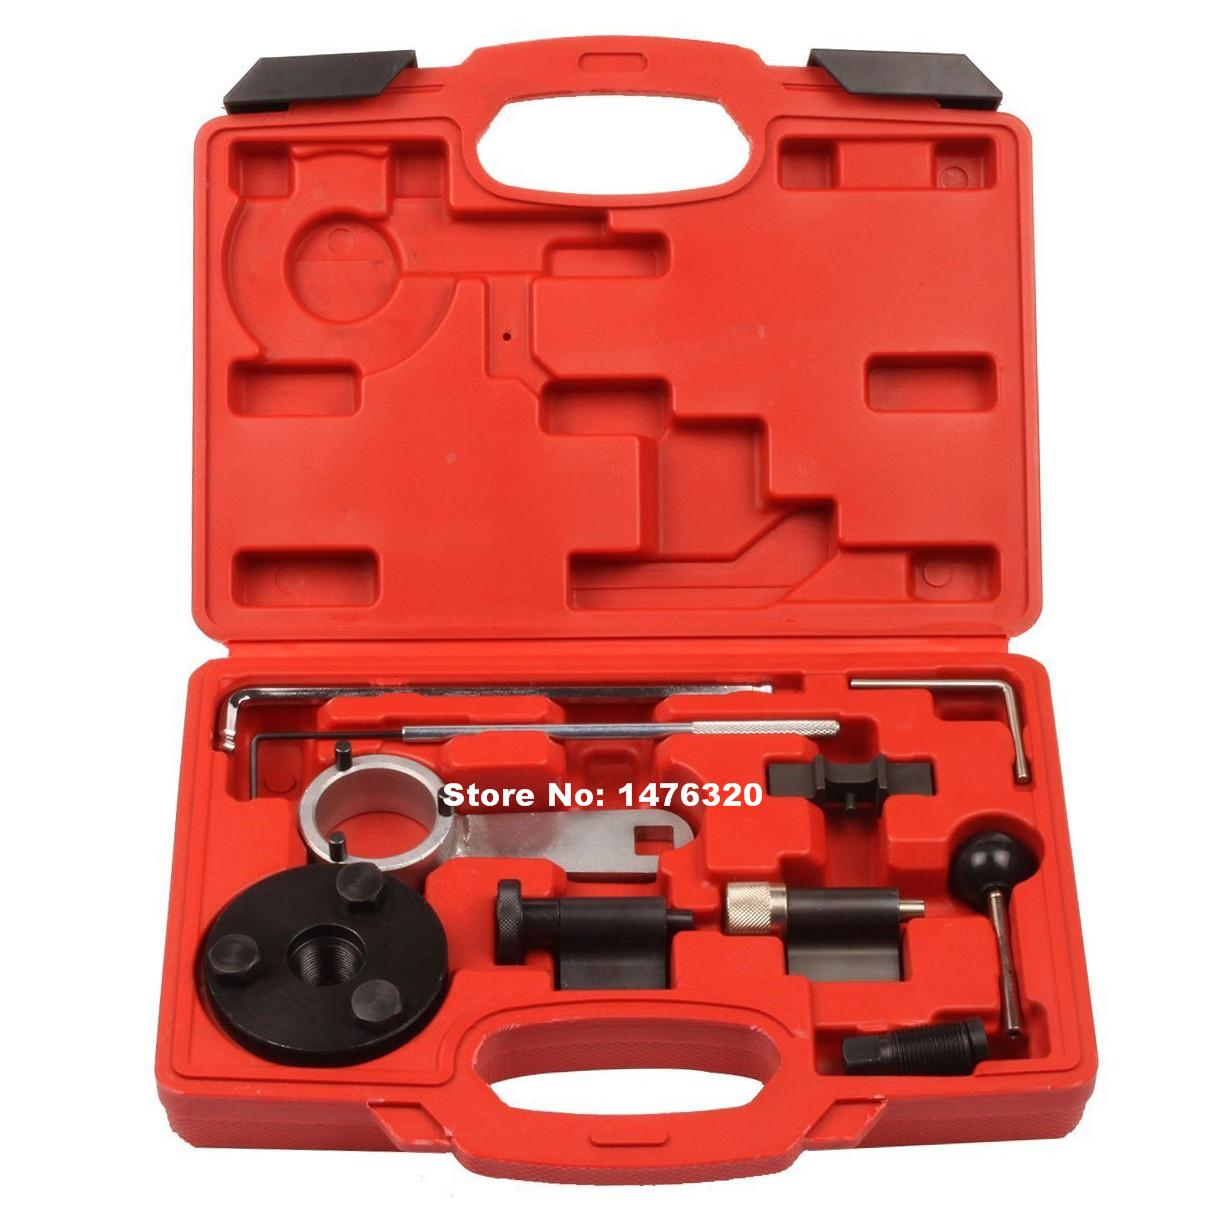 Automotive Engine Timing Camshaft Locking Setting Tool For Audi Golf Skoda VW VAG 1.6/2.0 TDI Auto Repair Garage Tools AT2196 engine timing crankshaft locking setting tool kit for vw audi seat skoda vag 1 6